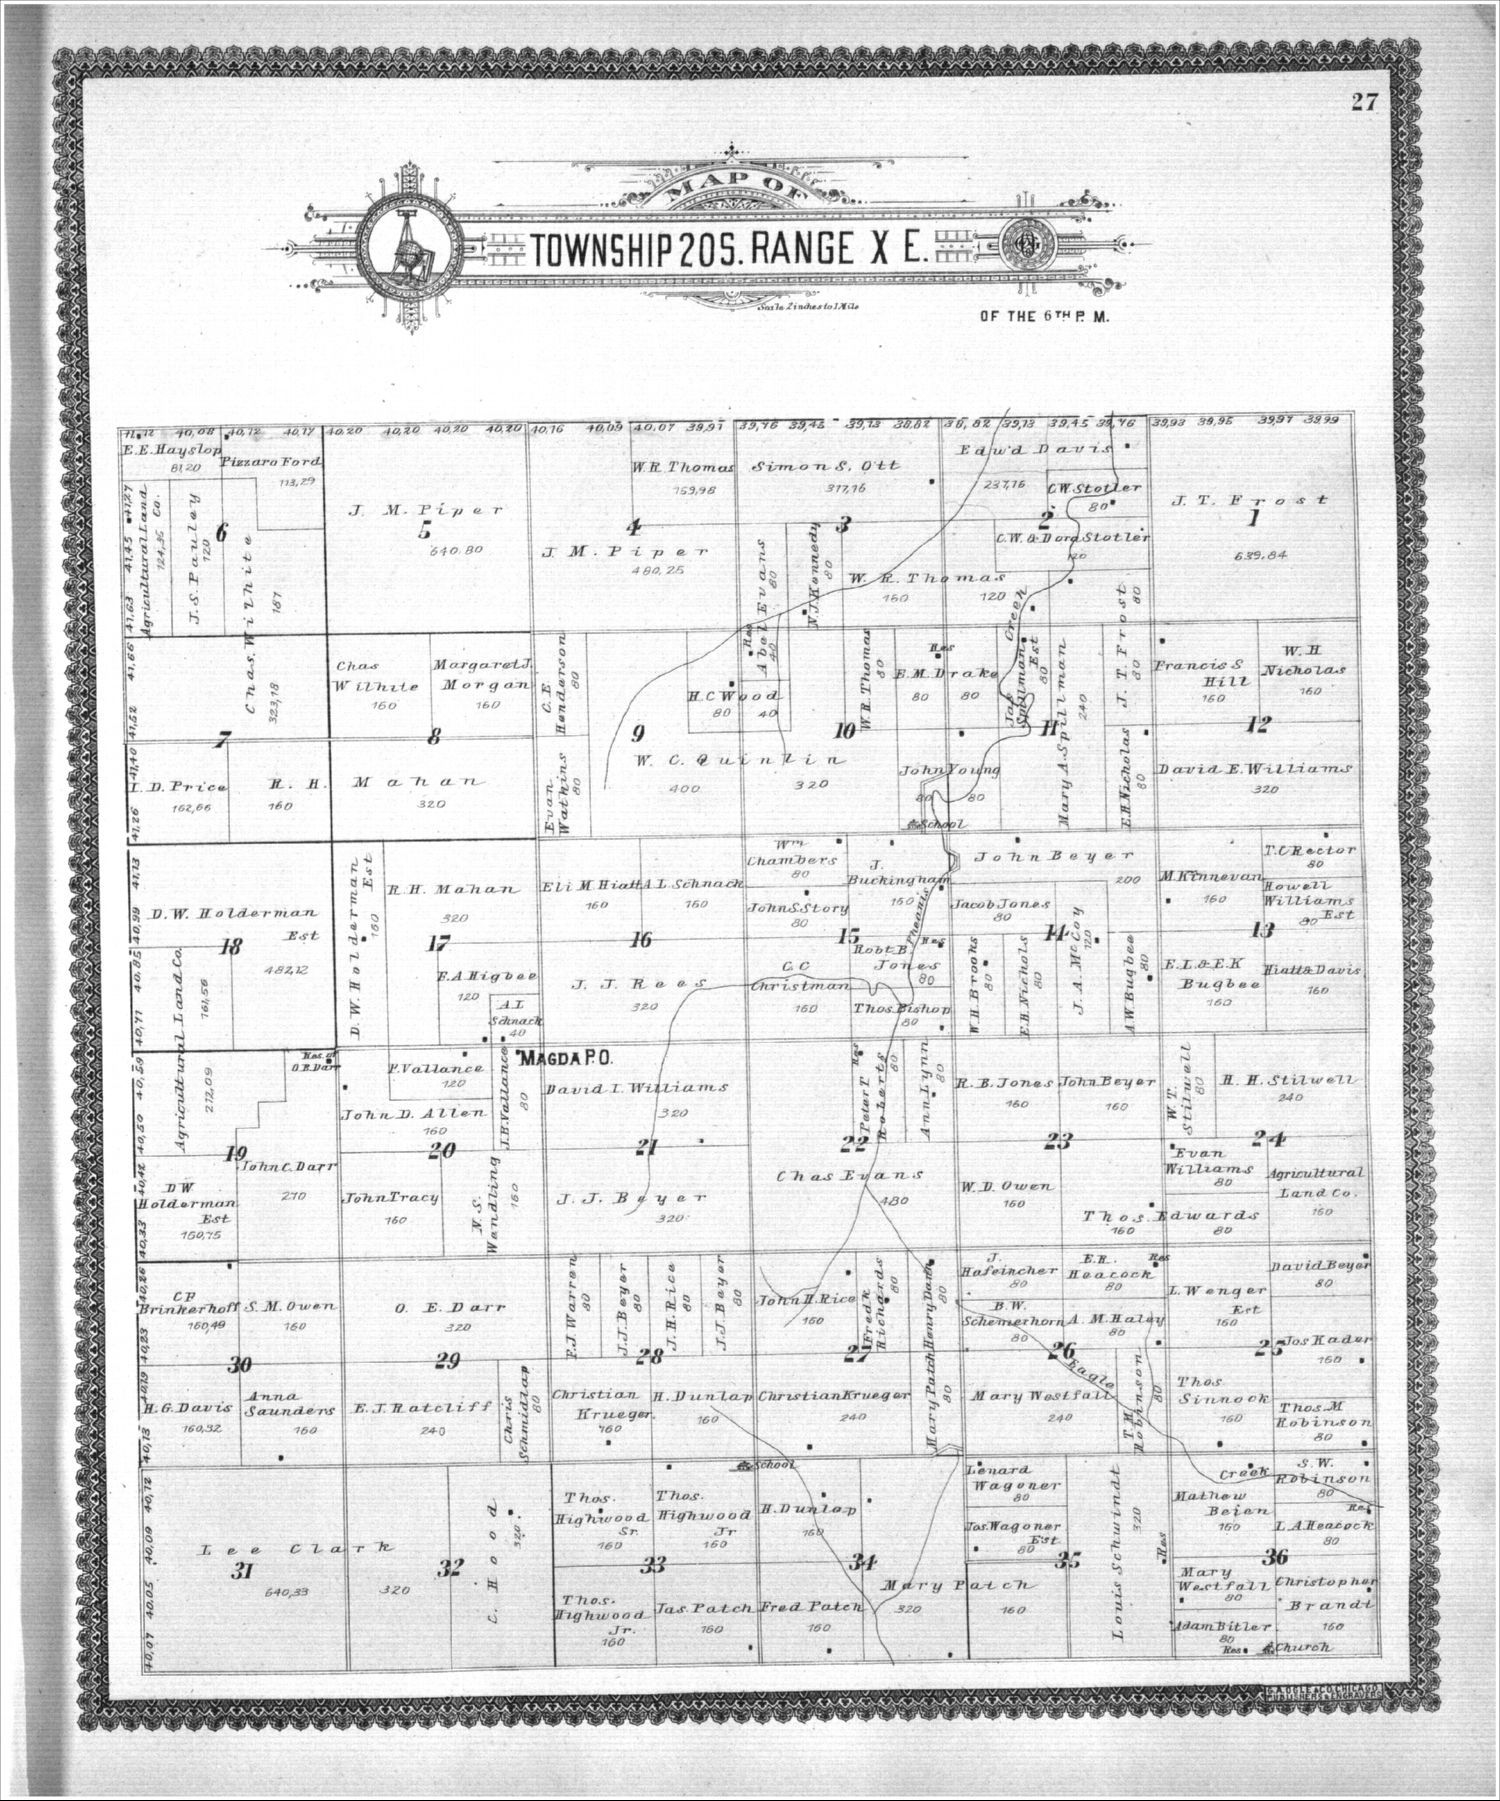 Standard atlas, Lyon County, Kansas - 27